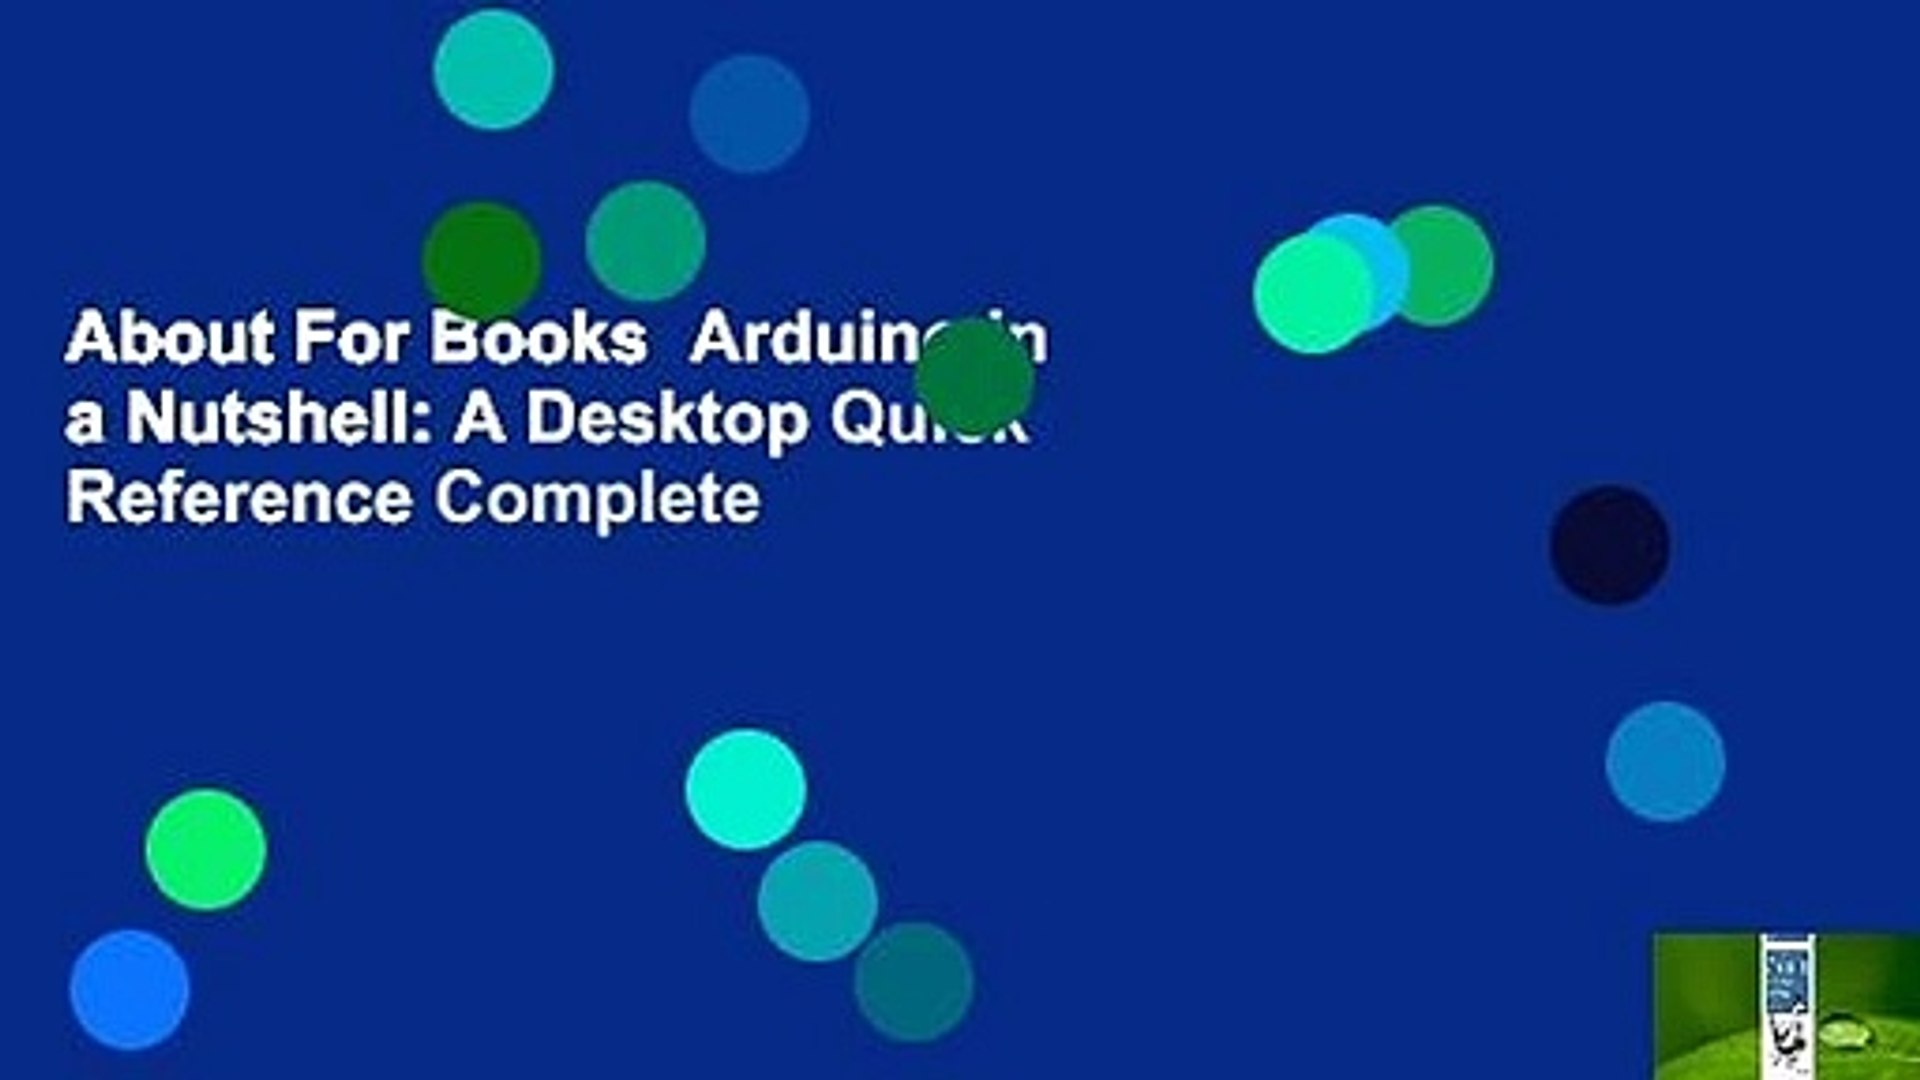 About For Books Arduino in a Nutshell: A Desktop Quick Reference Complete